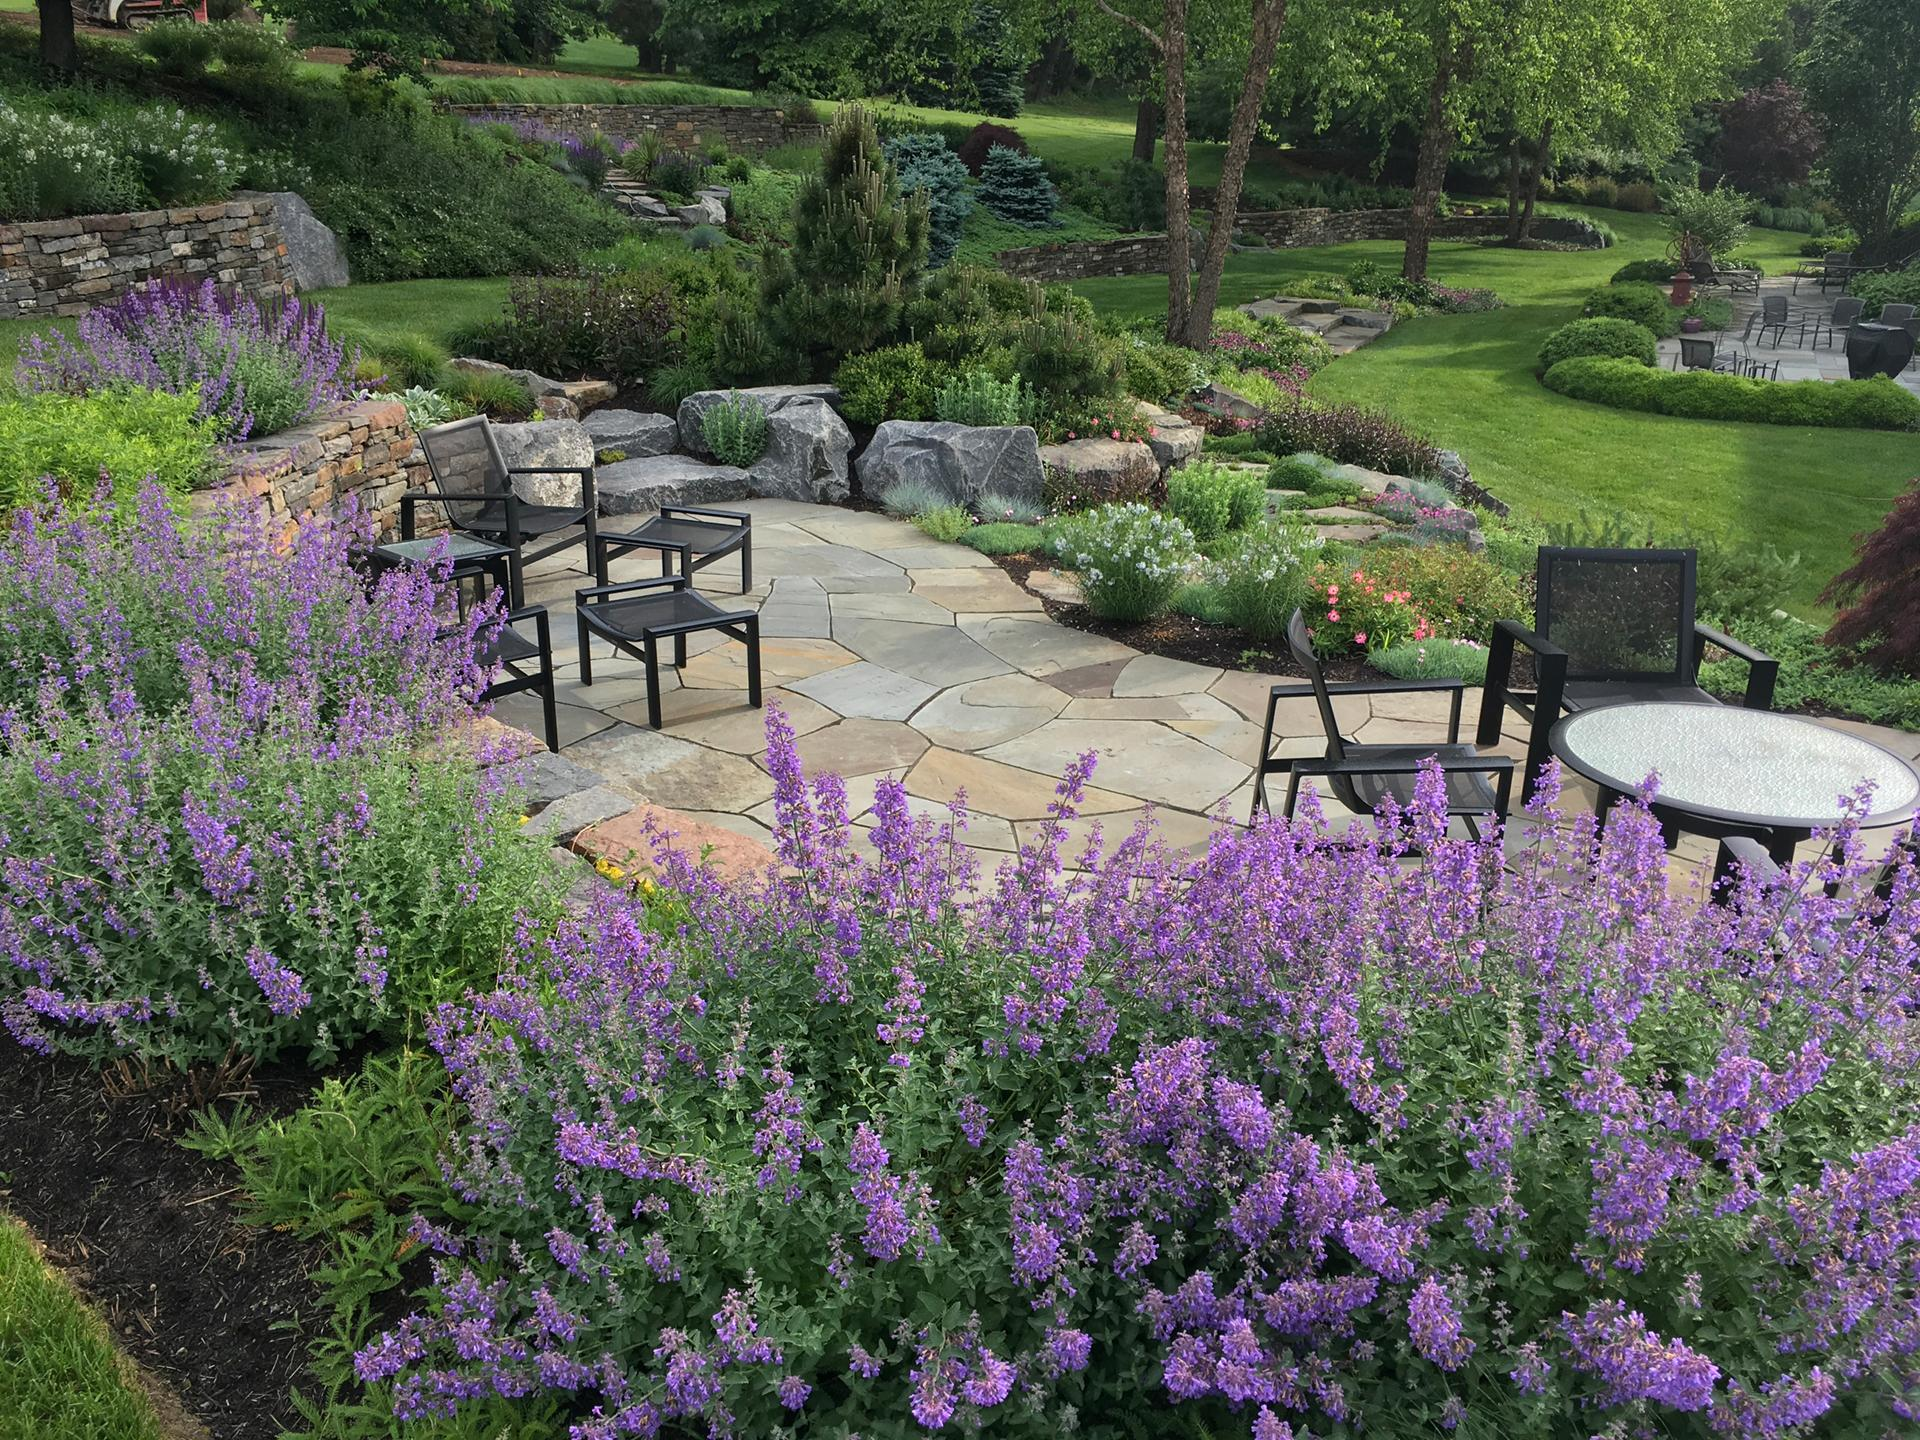 patio-garden-chester-chester-county-chadds-ford-pa